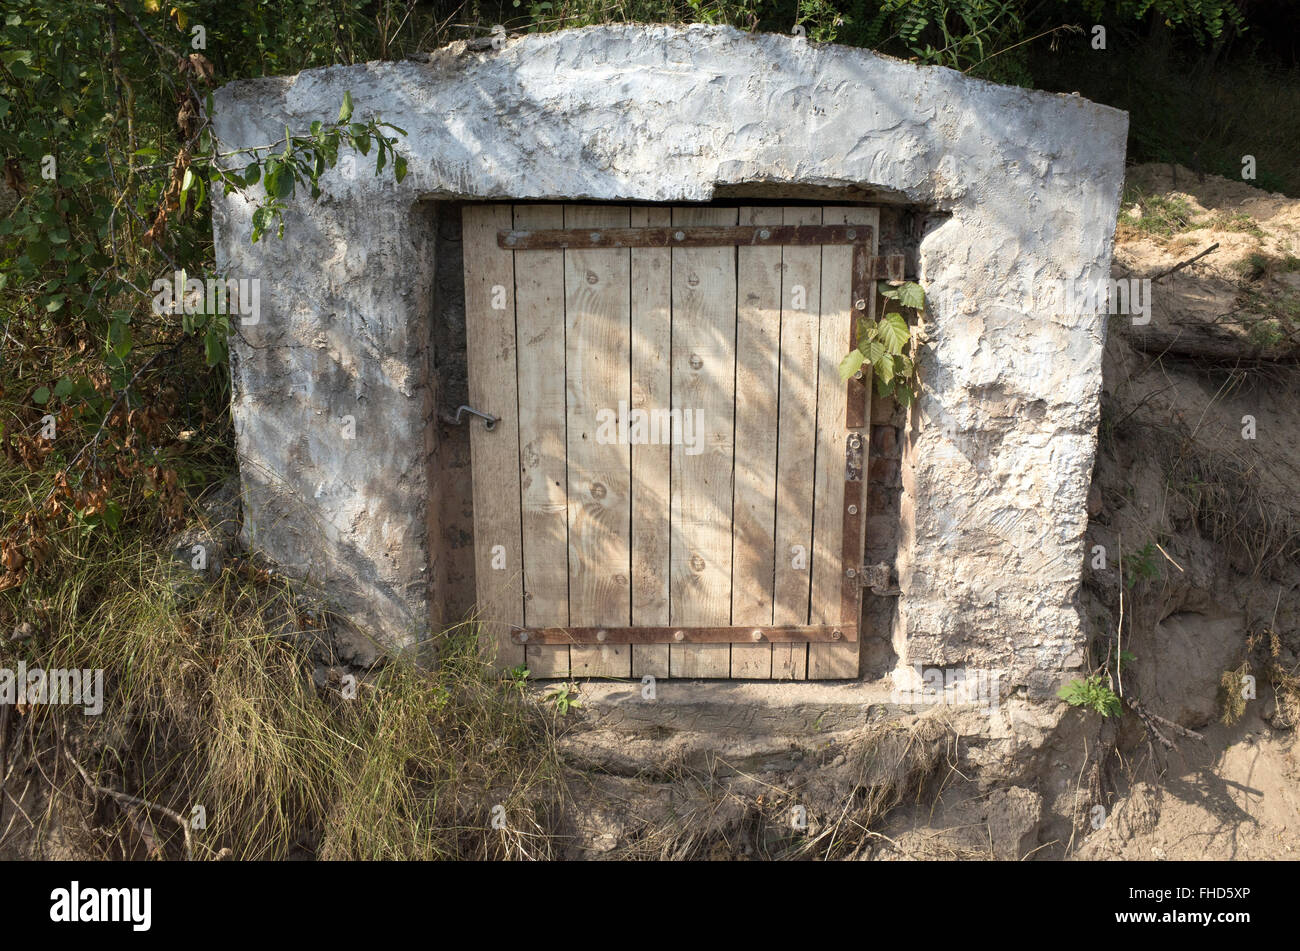 Small mystery door found in side of hill beside road. Rzeczyca Central Poland - Stock Image